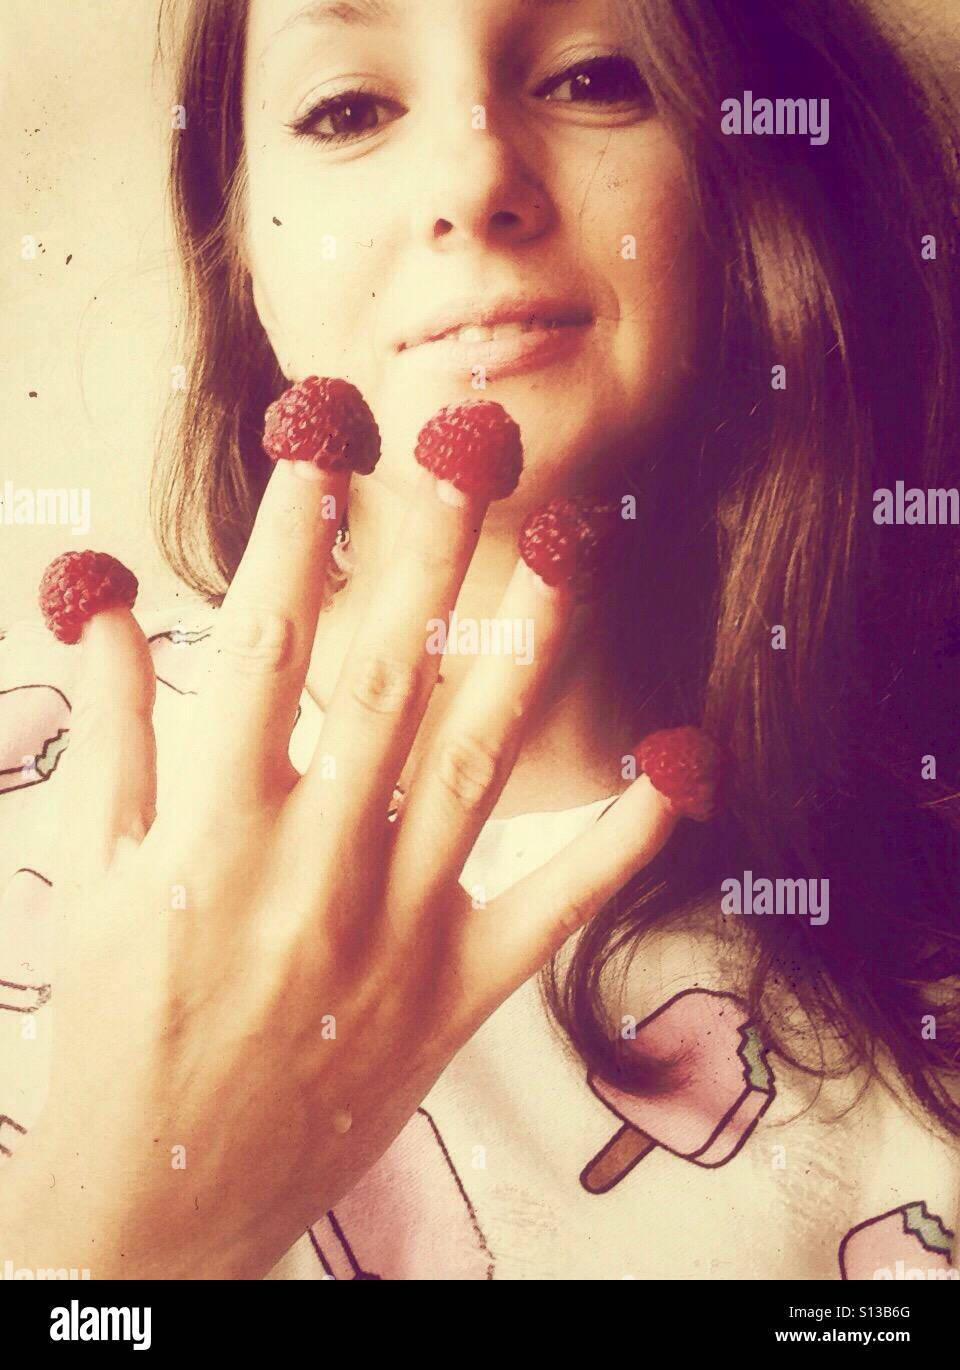 Girl with raspberries on the fingers Stock Photo